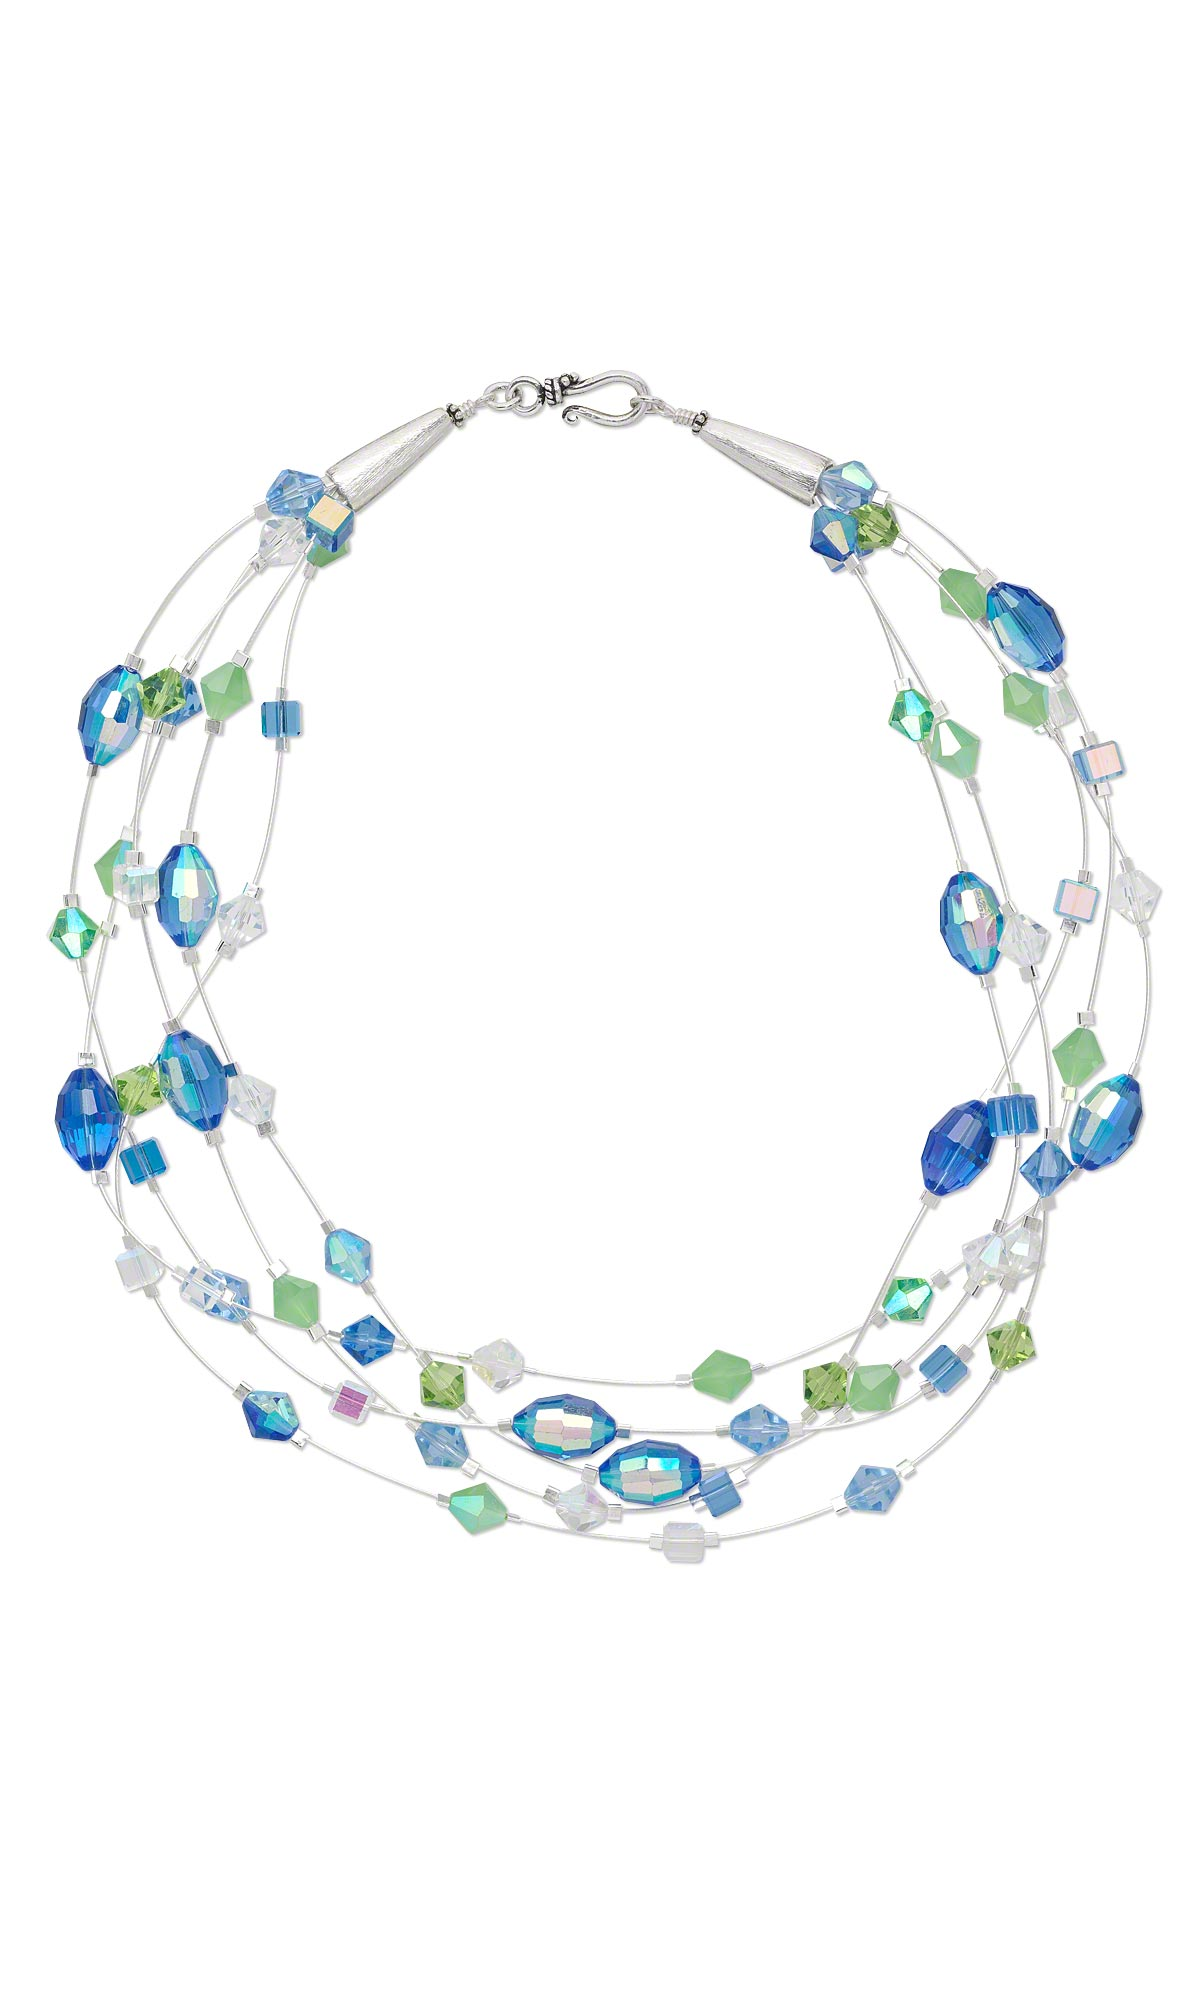 Jewelry Design - Multi-Strand Necklace with Celestial Crystal® Beads ...